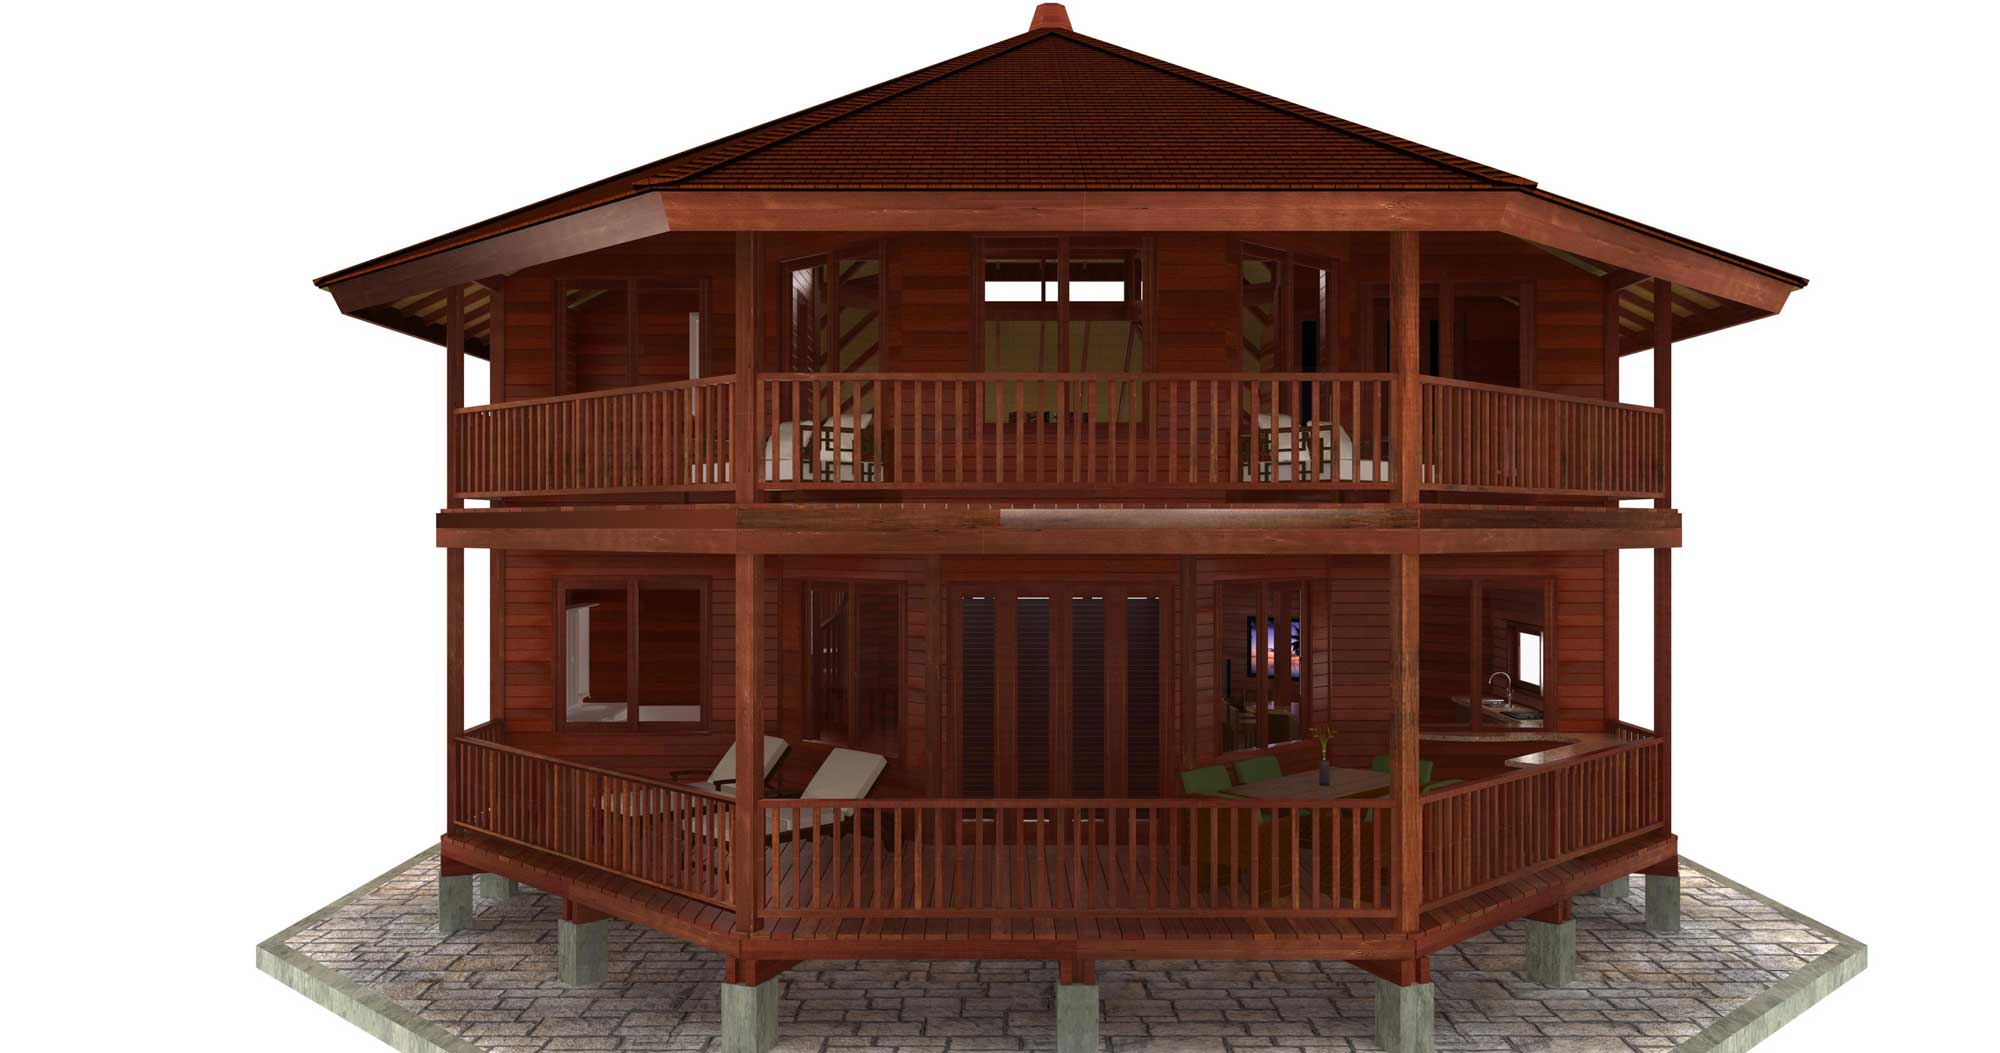 China cat design caribbean floor plans teak bali for Caribbean home plans